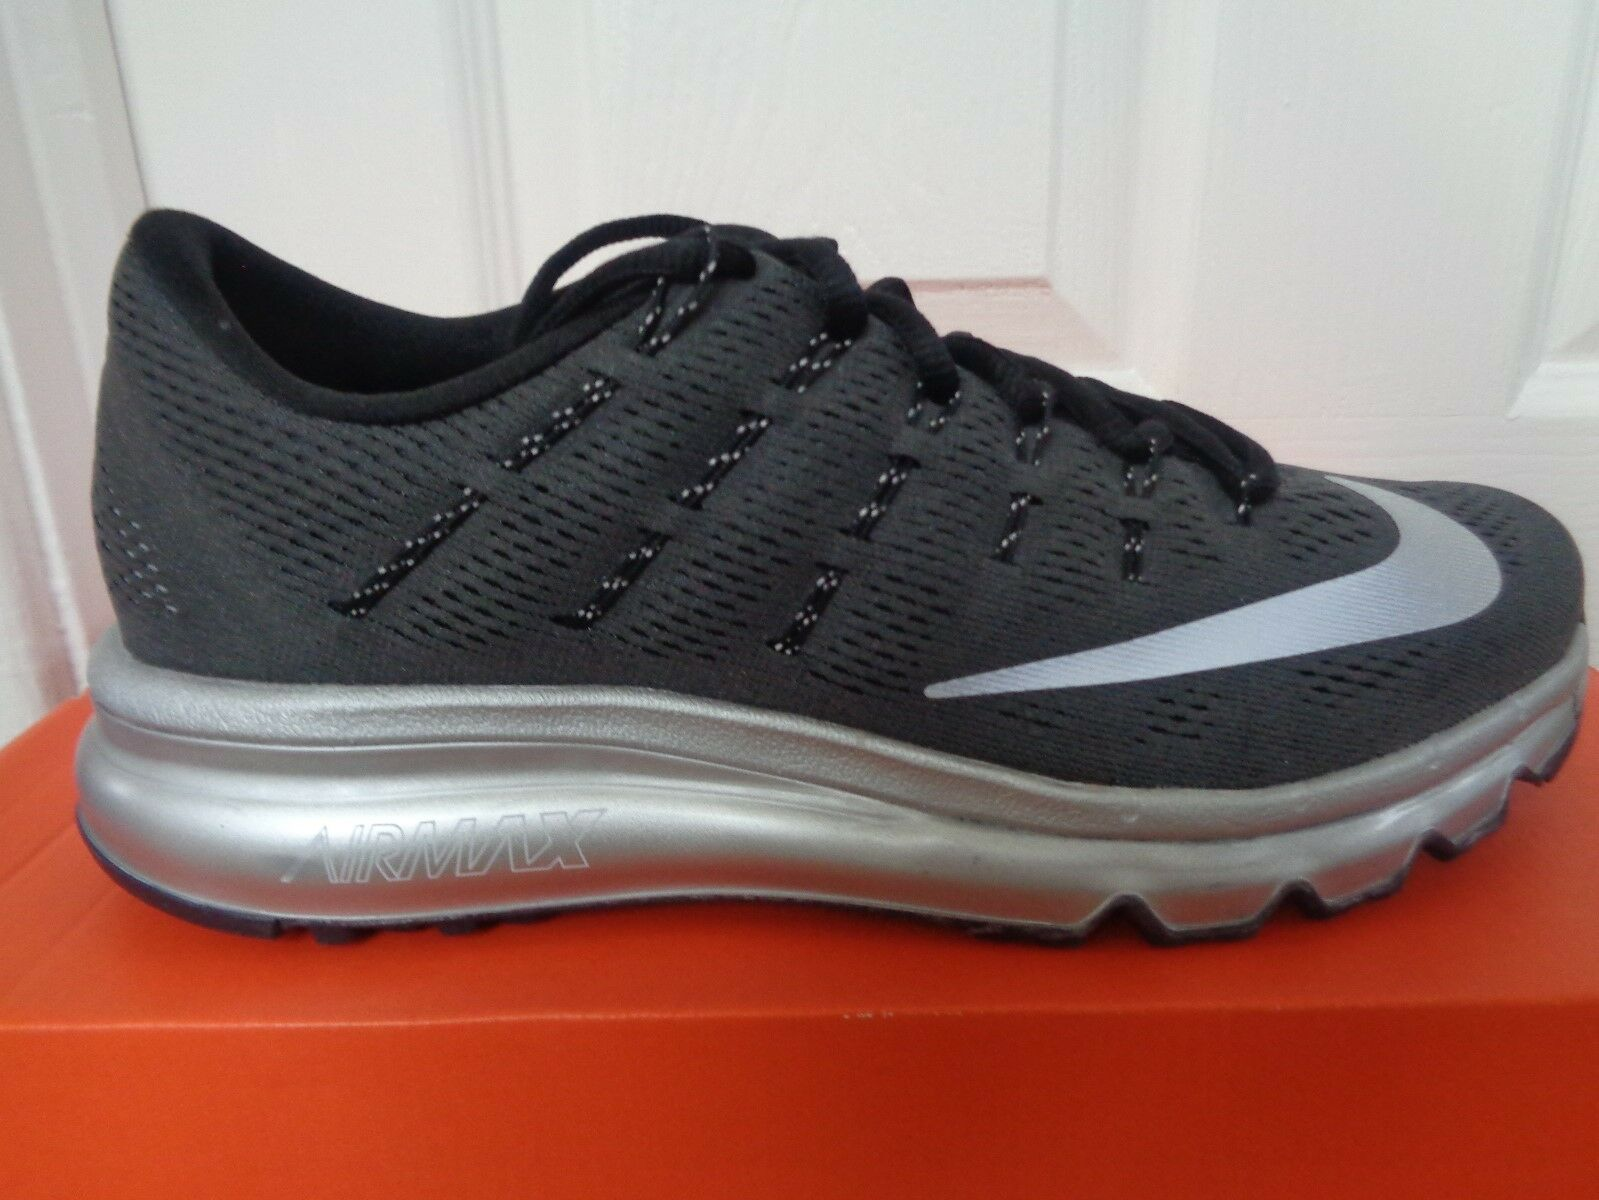 Nike Air Max 2016 PRM Womens Trainers Baskets 810886 001 5.5 UK 5.5 001 EU 39 US 8 NEW f88d90